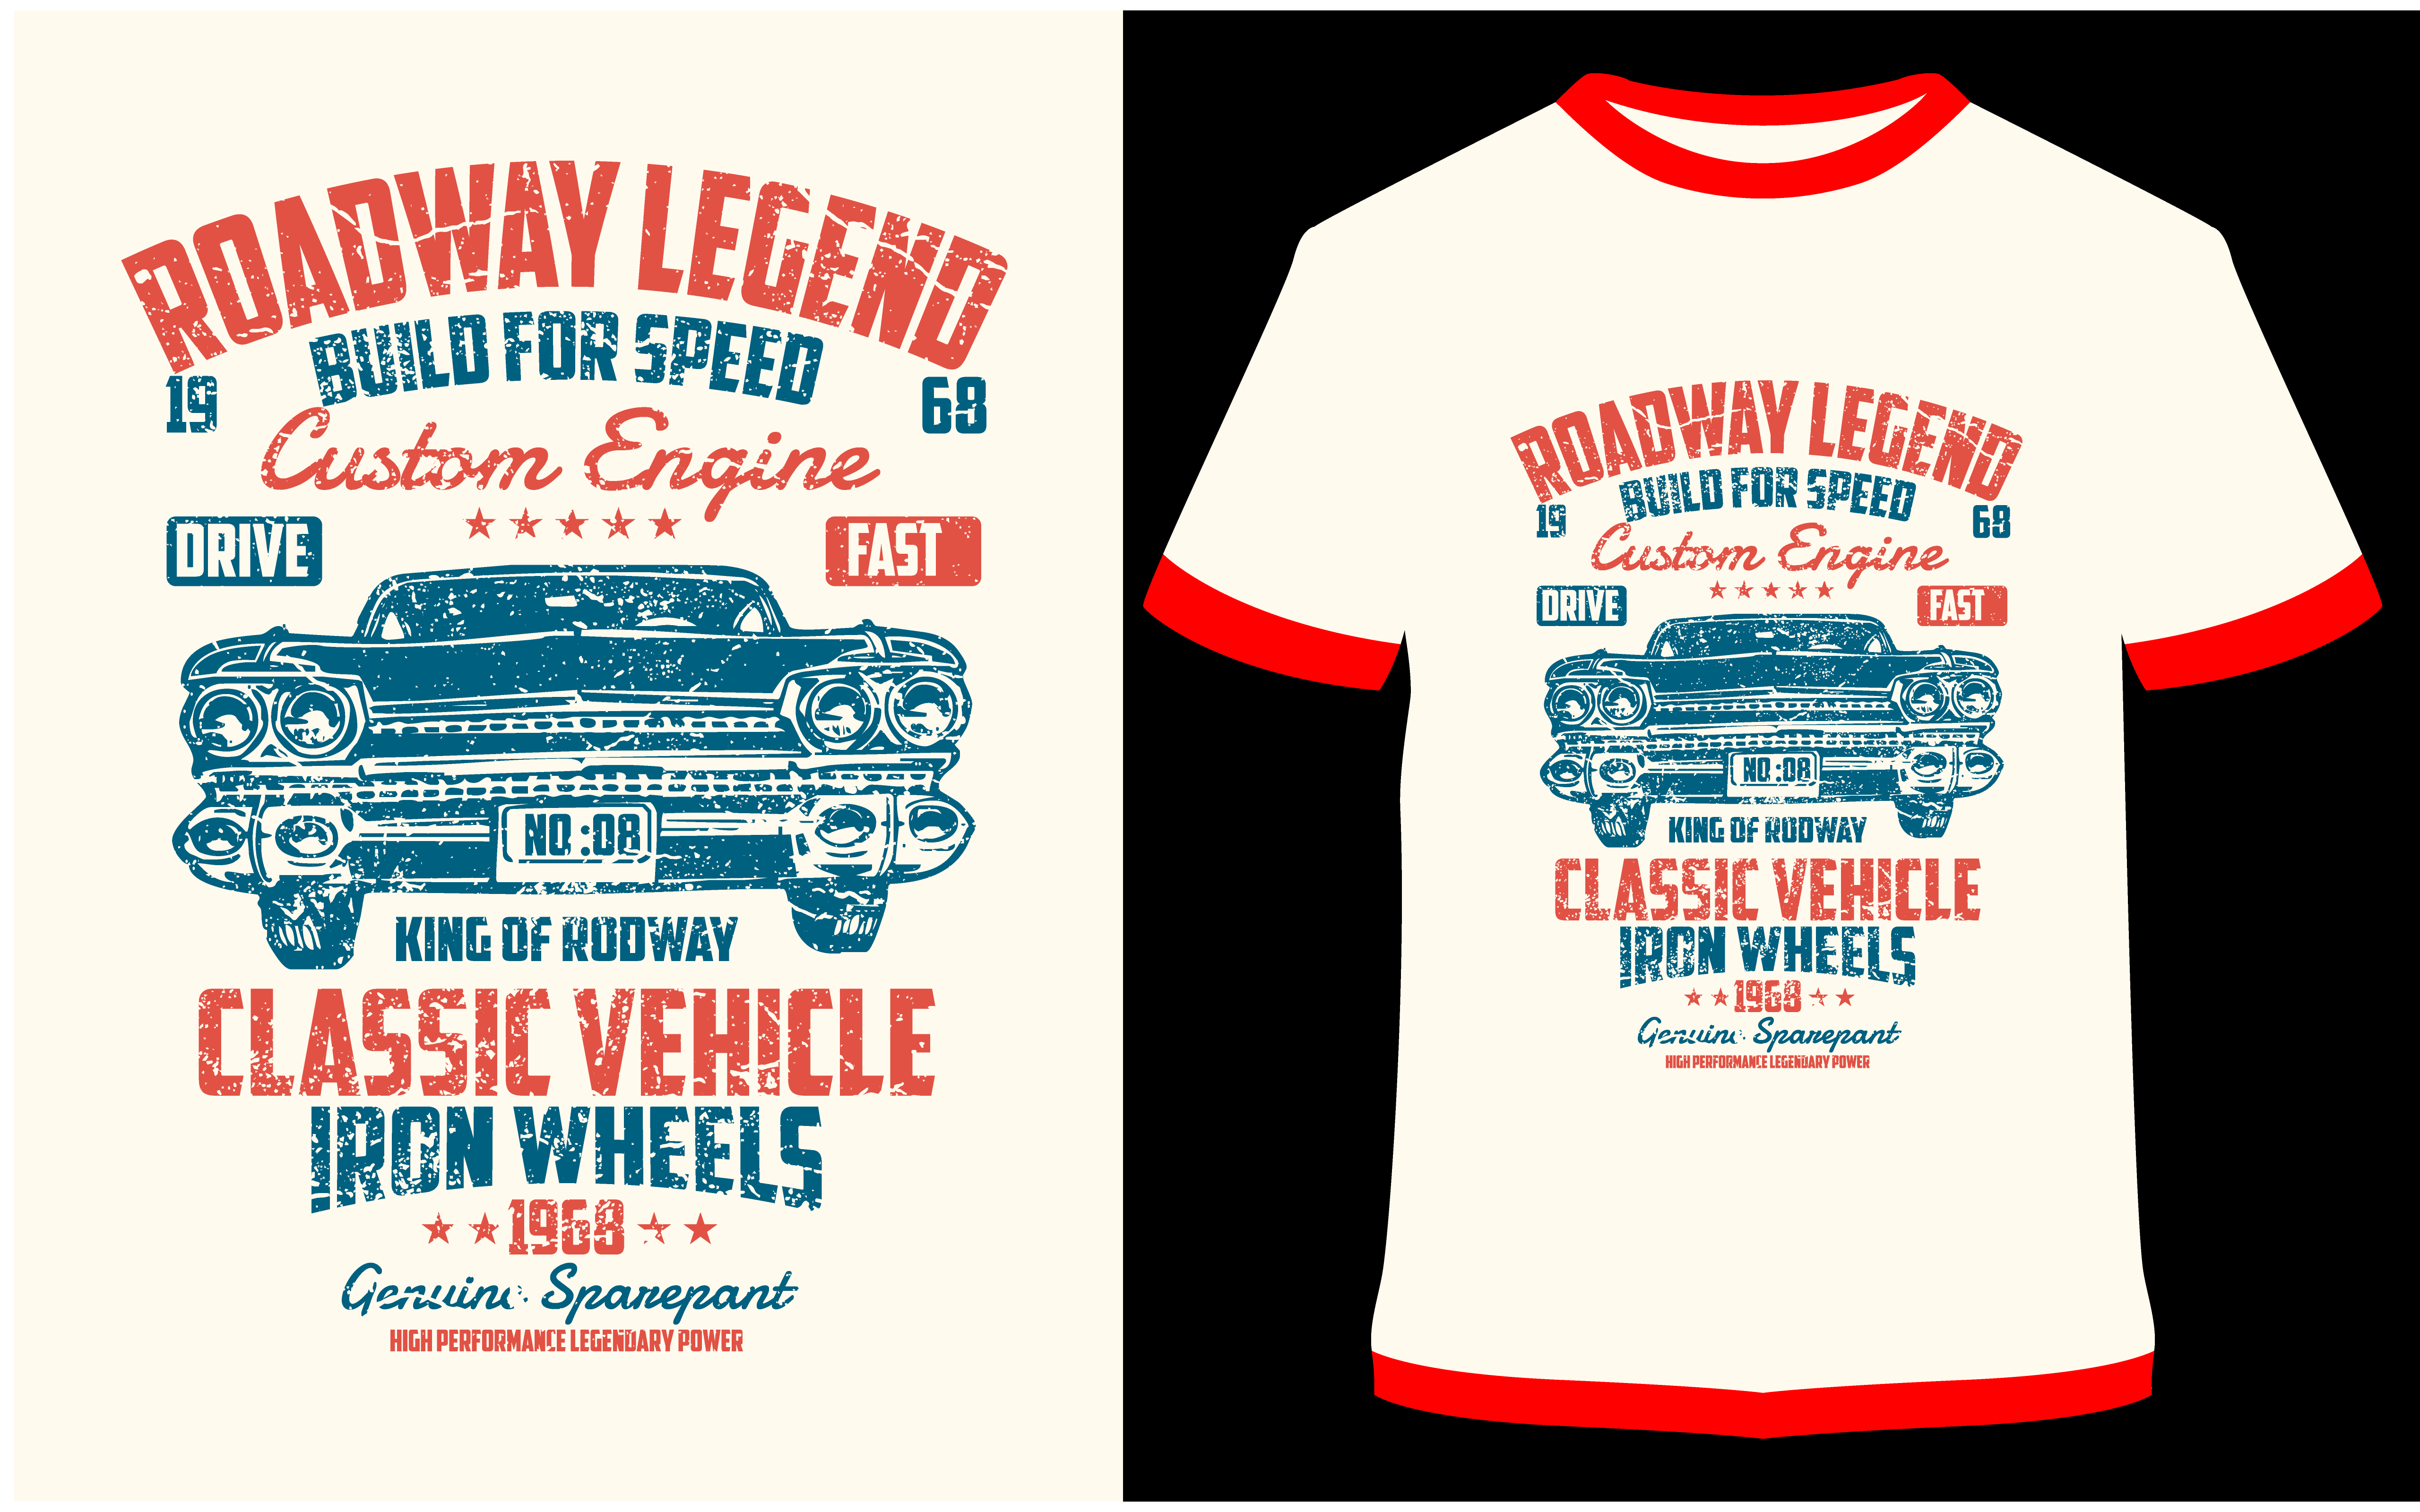 Download Free T Shirt Design Roadway Legend Graphic By Prodesigns Creative for Cricut Explore, Silhouette and other cutting machines.